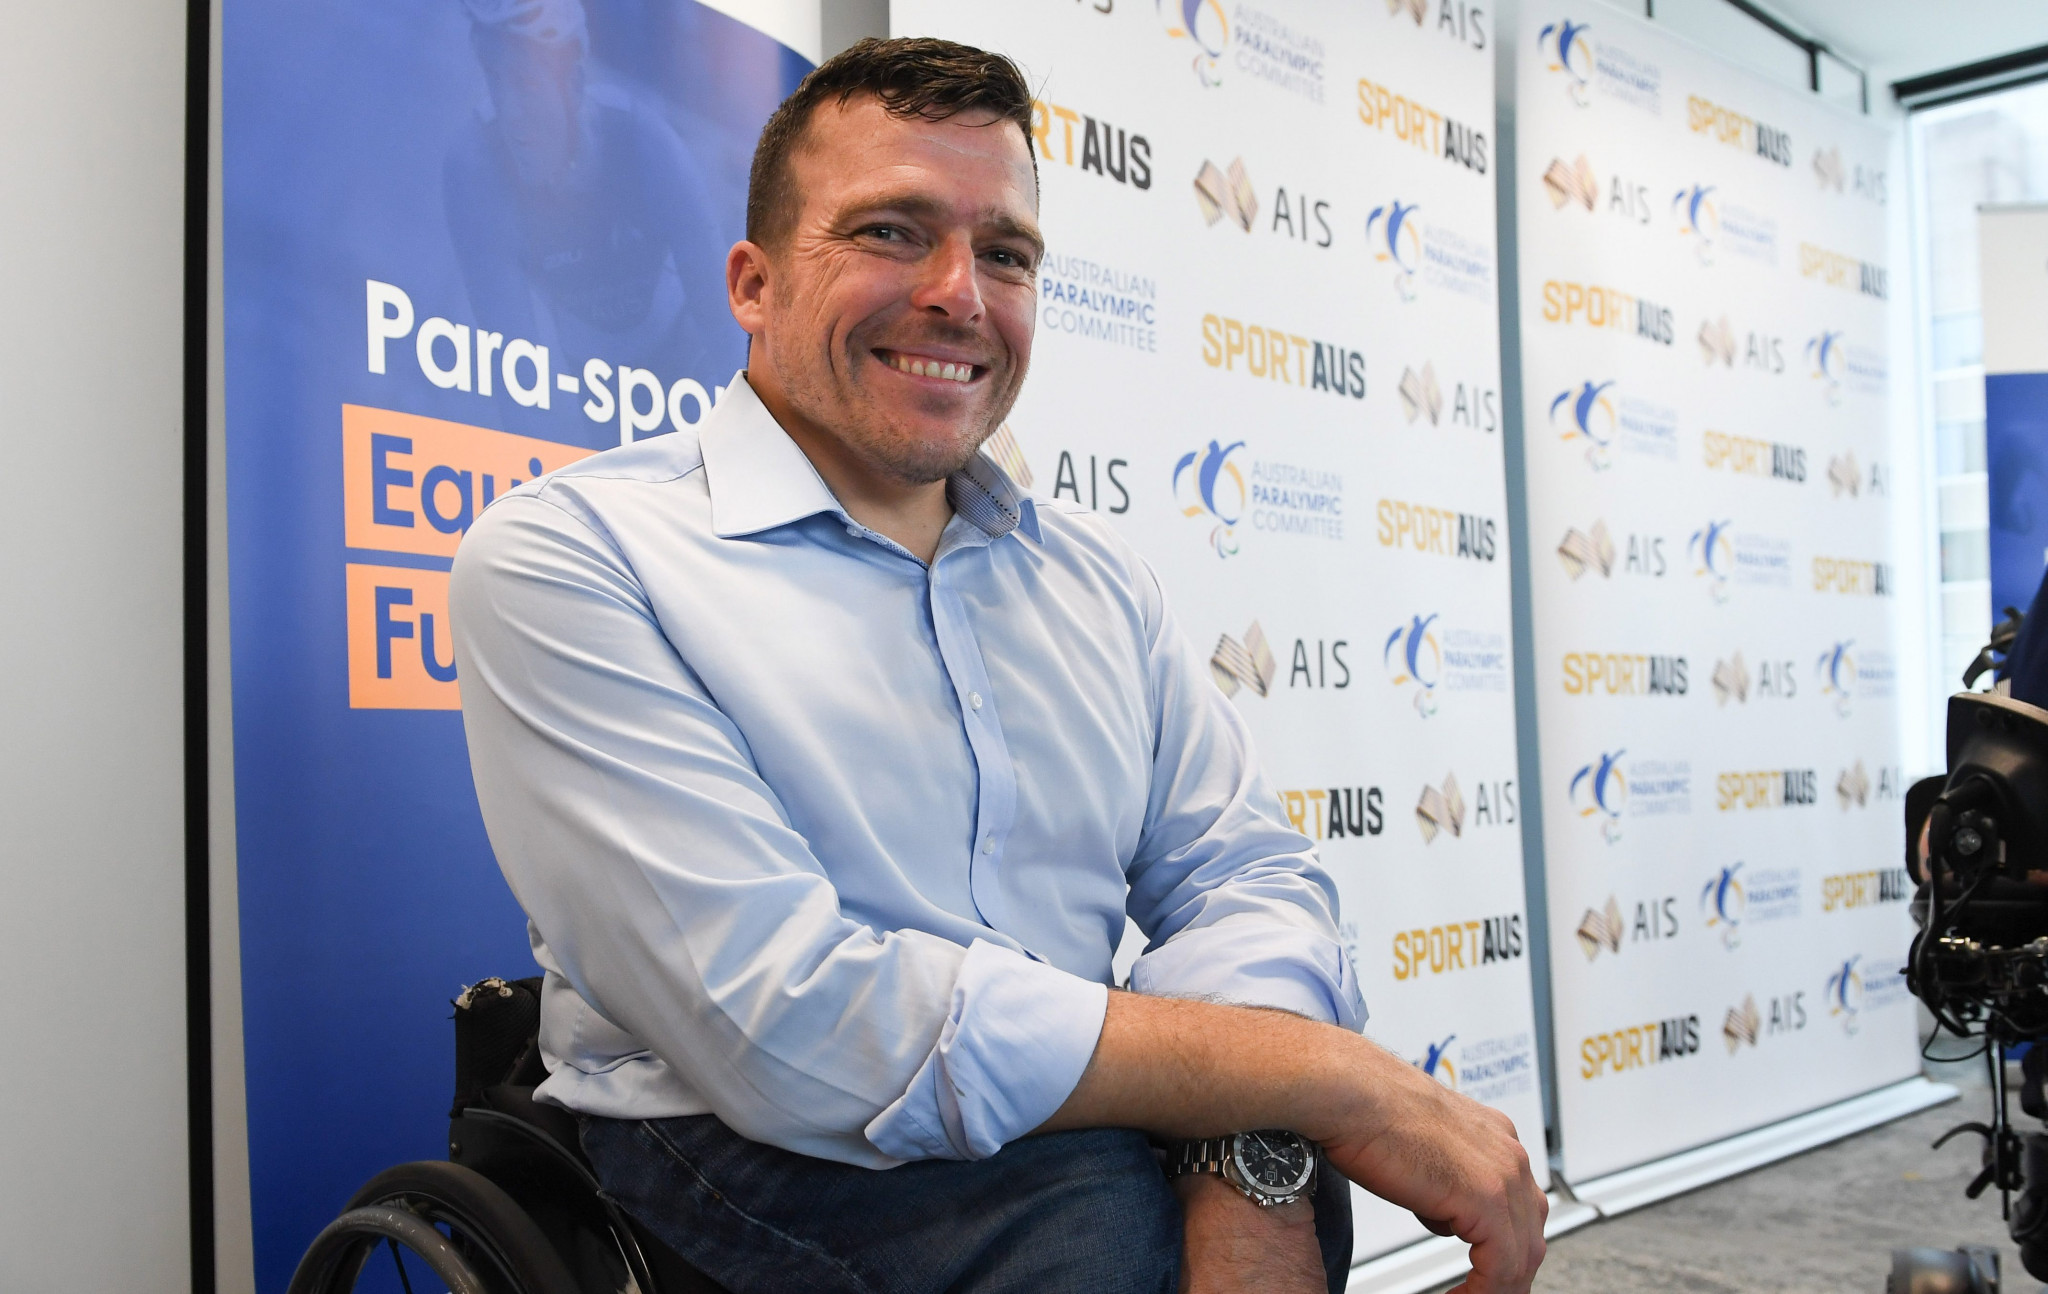 Paralympics Australia's Para-sport Equipment Fund celebrates first corporate donation